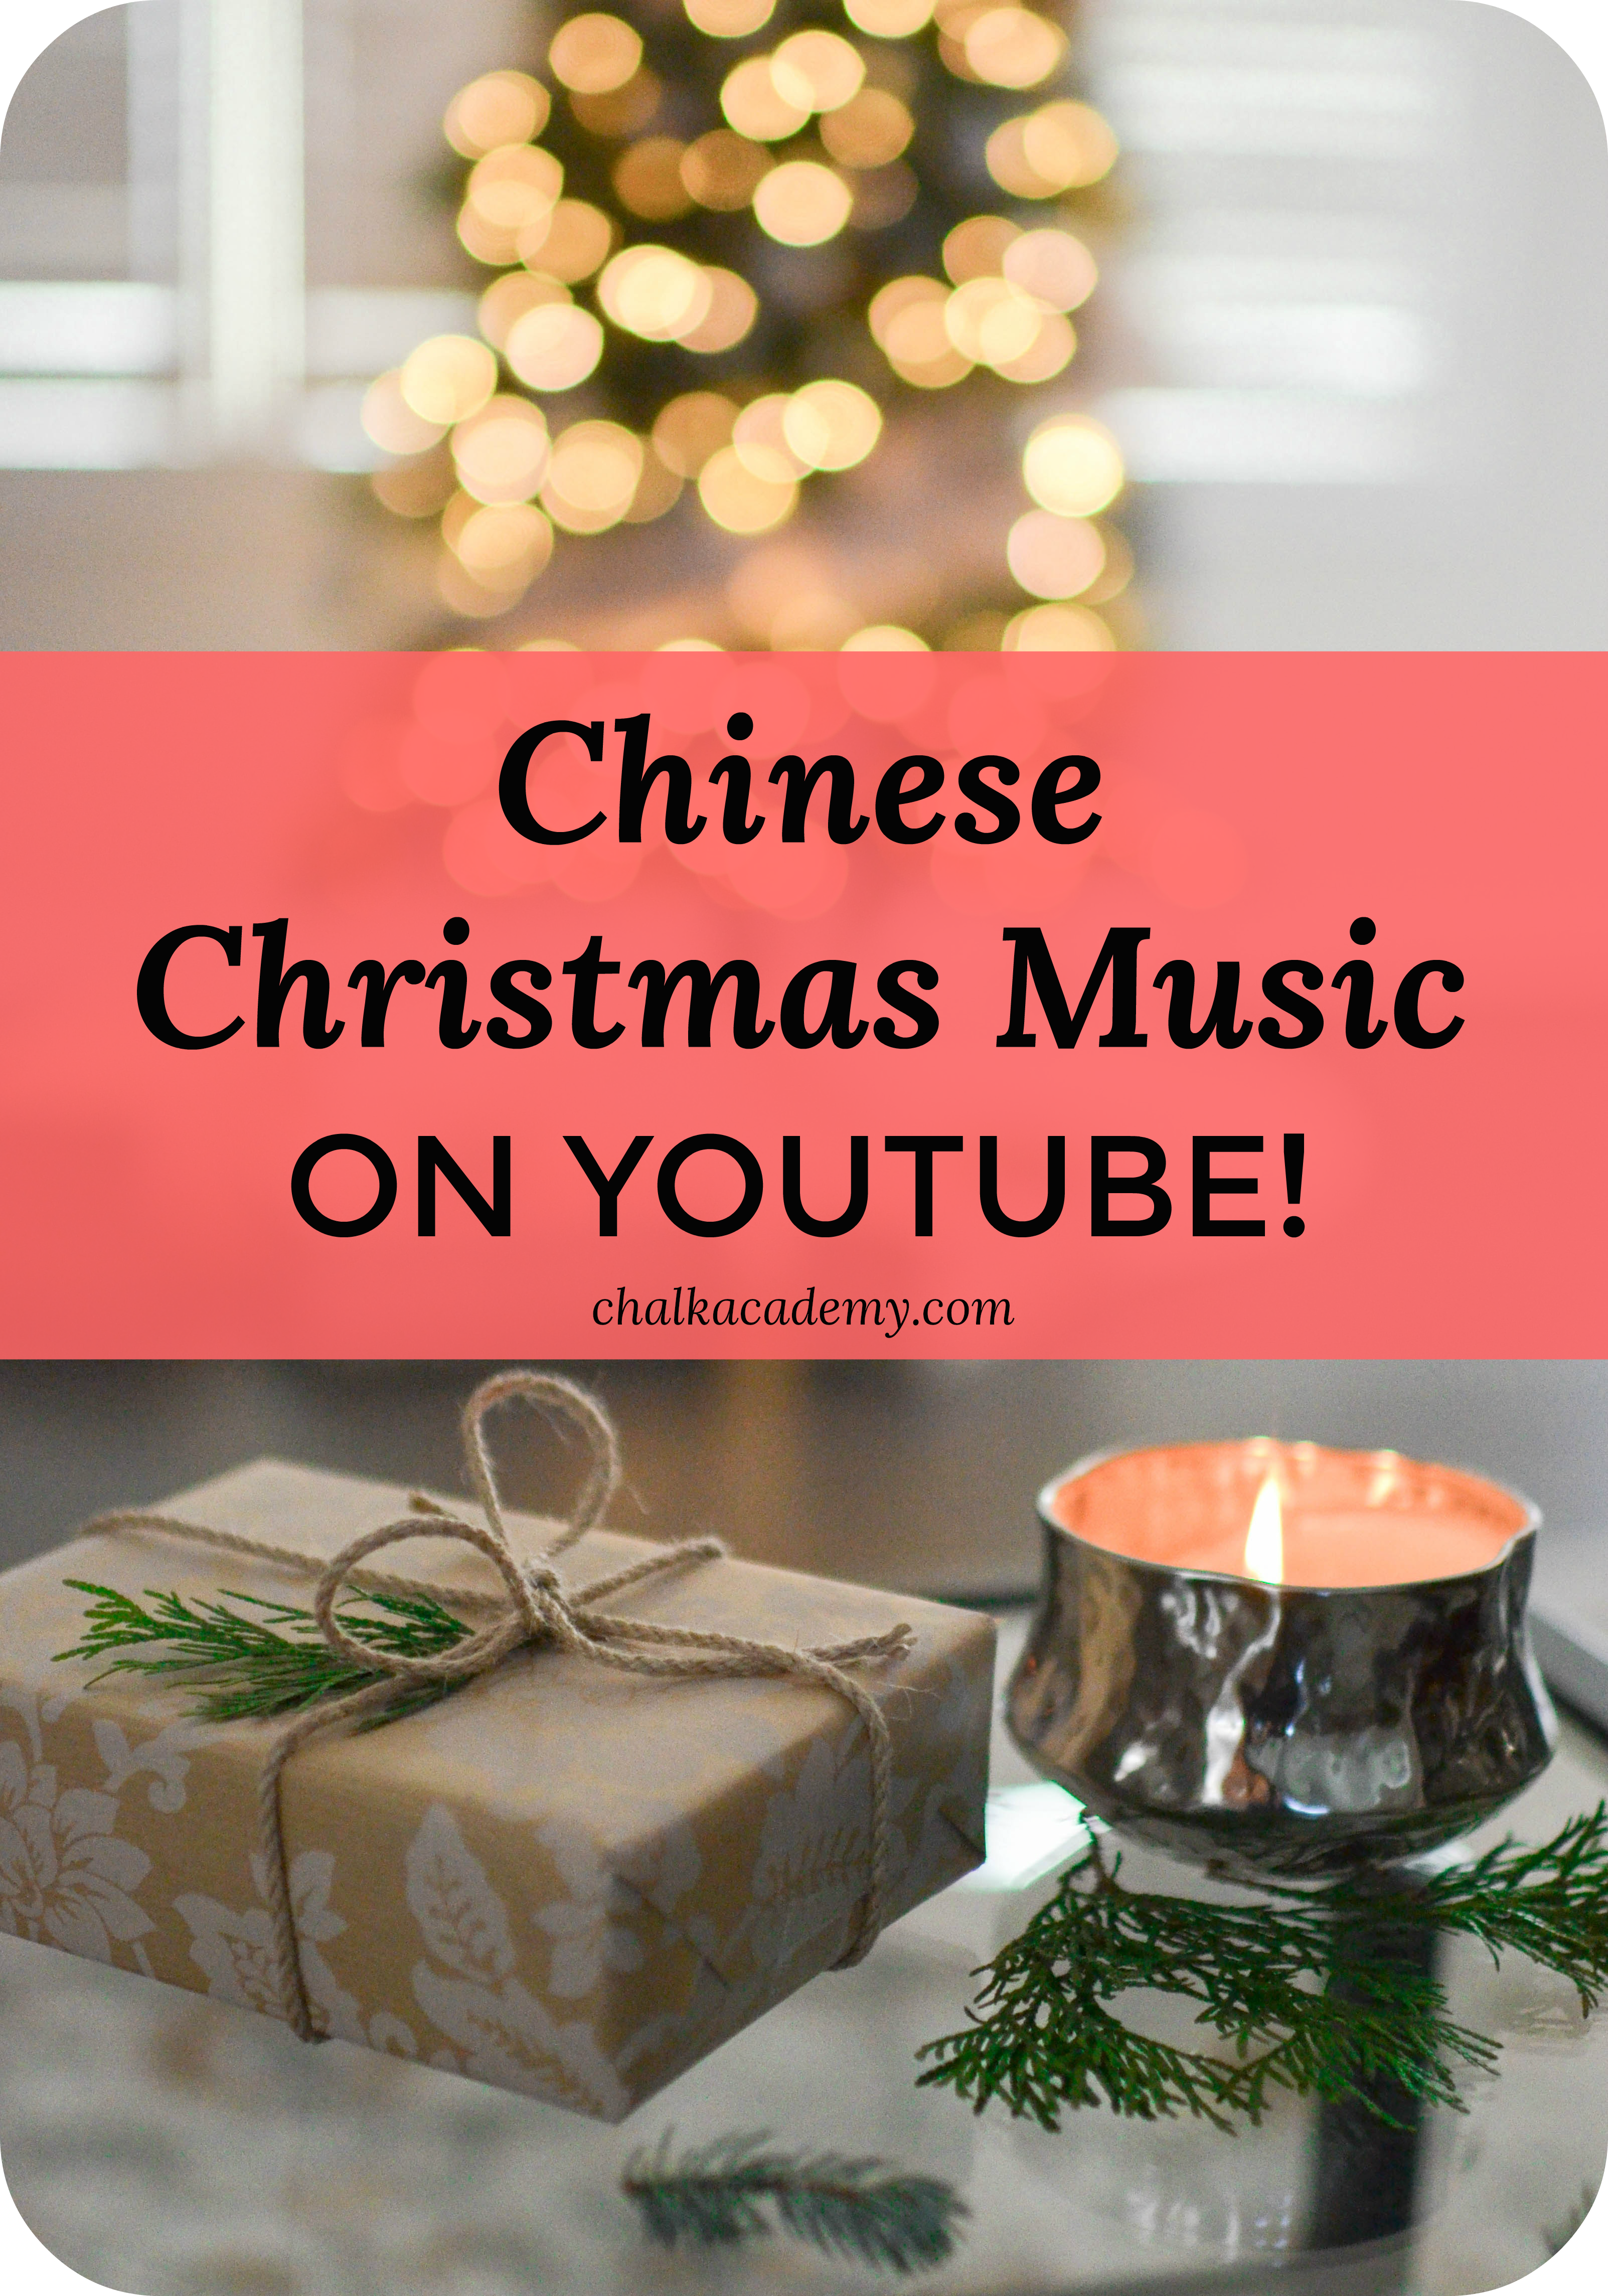 10 Chinese Christmas Youtube Videos Songs And Stories In Mandarin Chinese Christmas Christmas Music For Kids Music Lessons For Kids